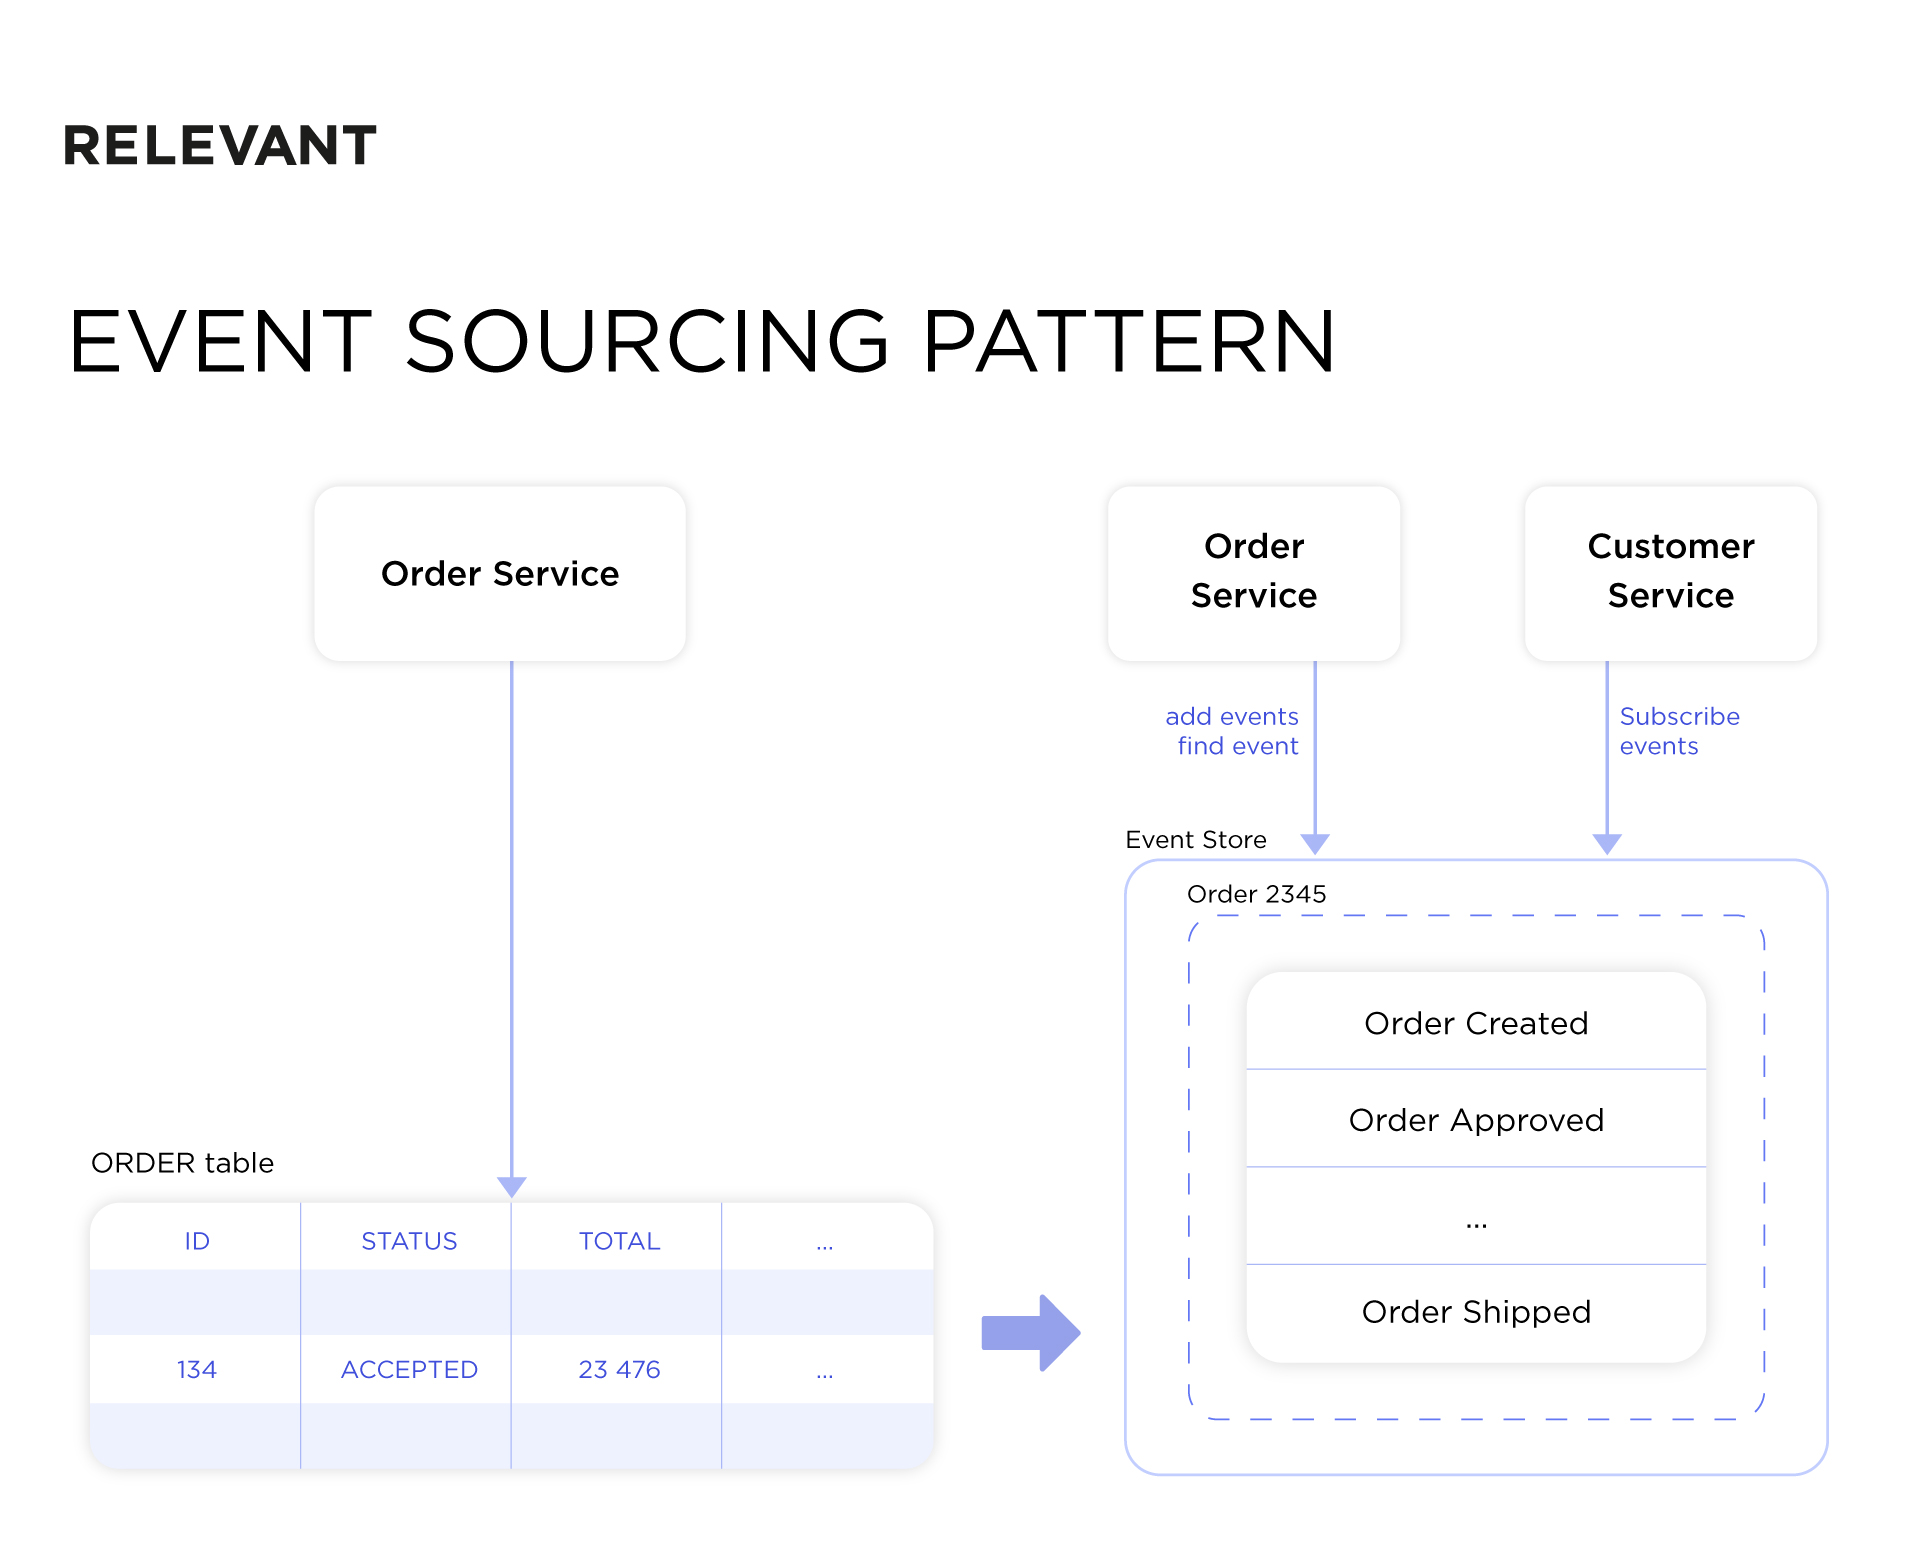 The Event Sourcing pattern scheme illustration